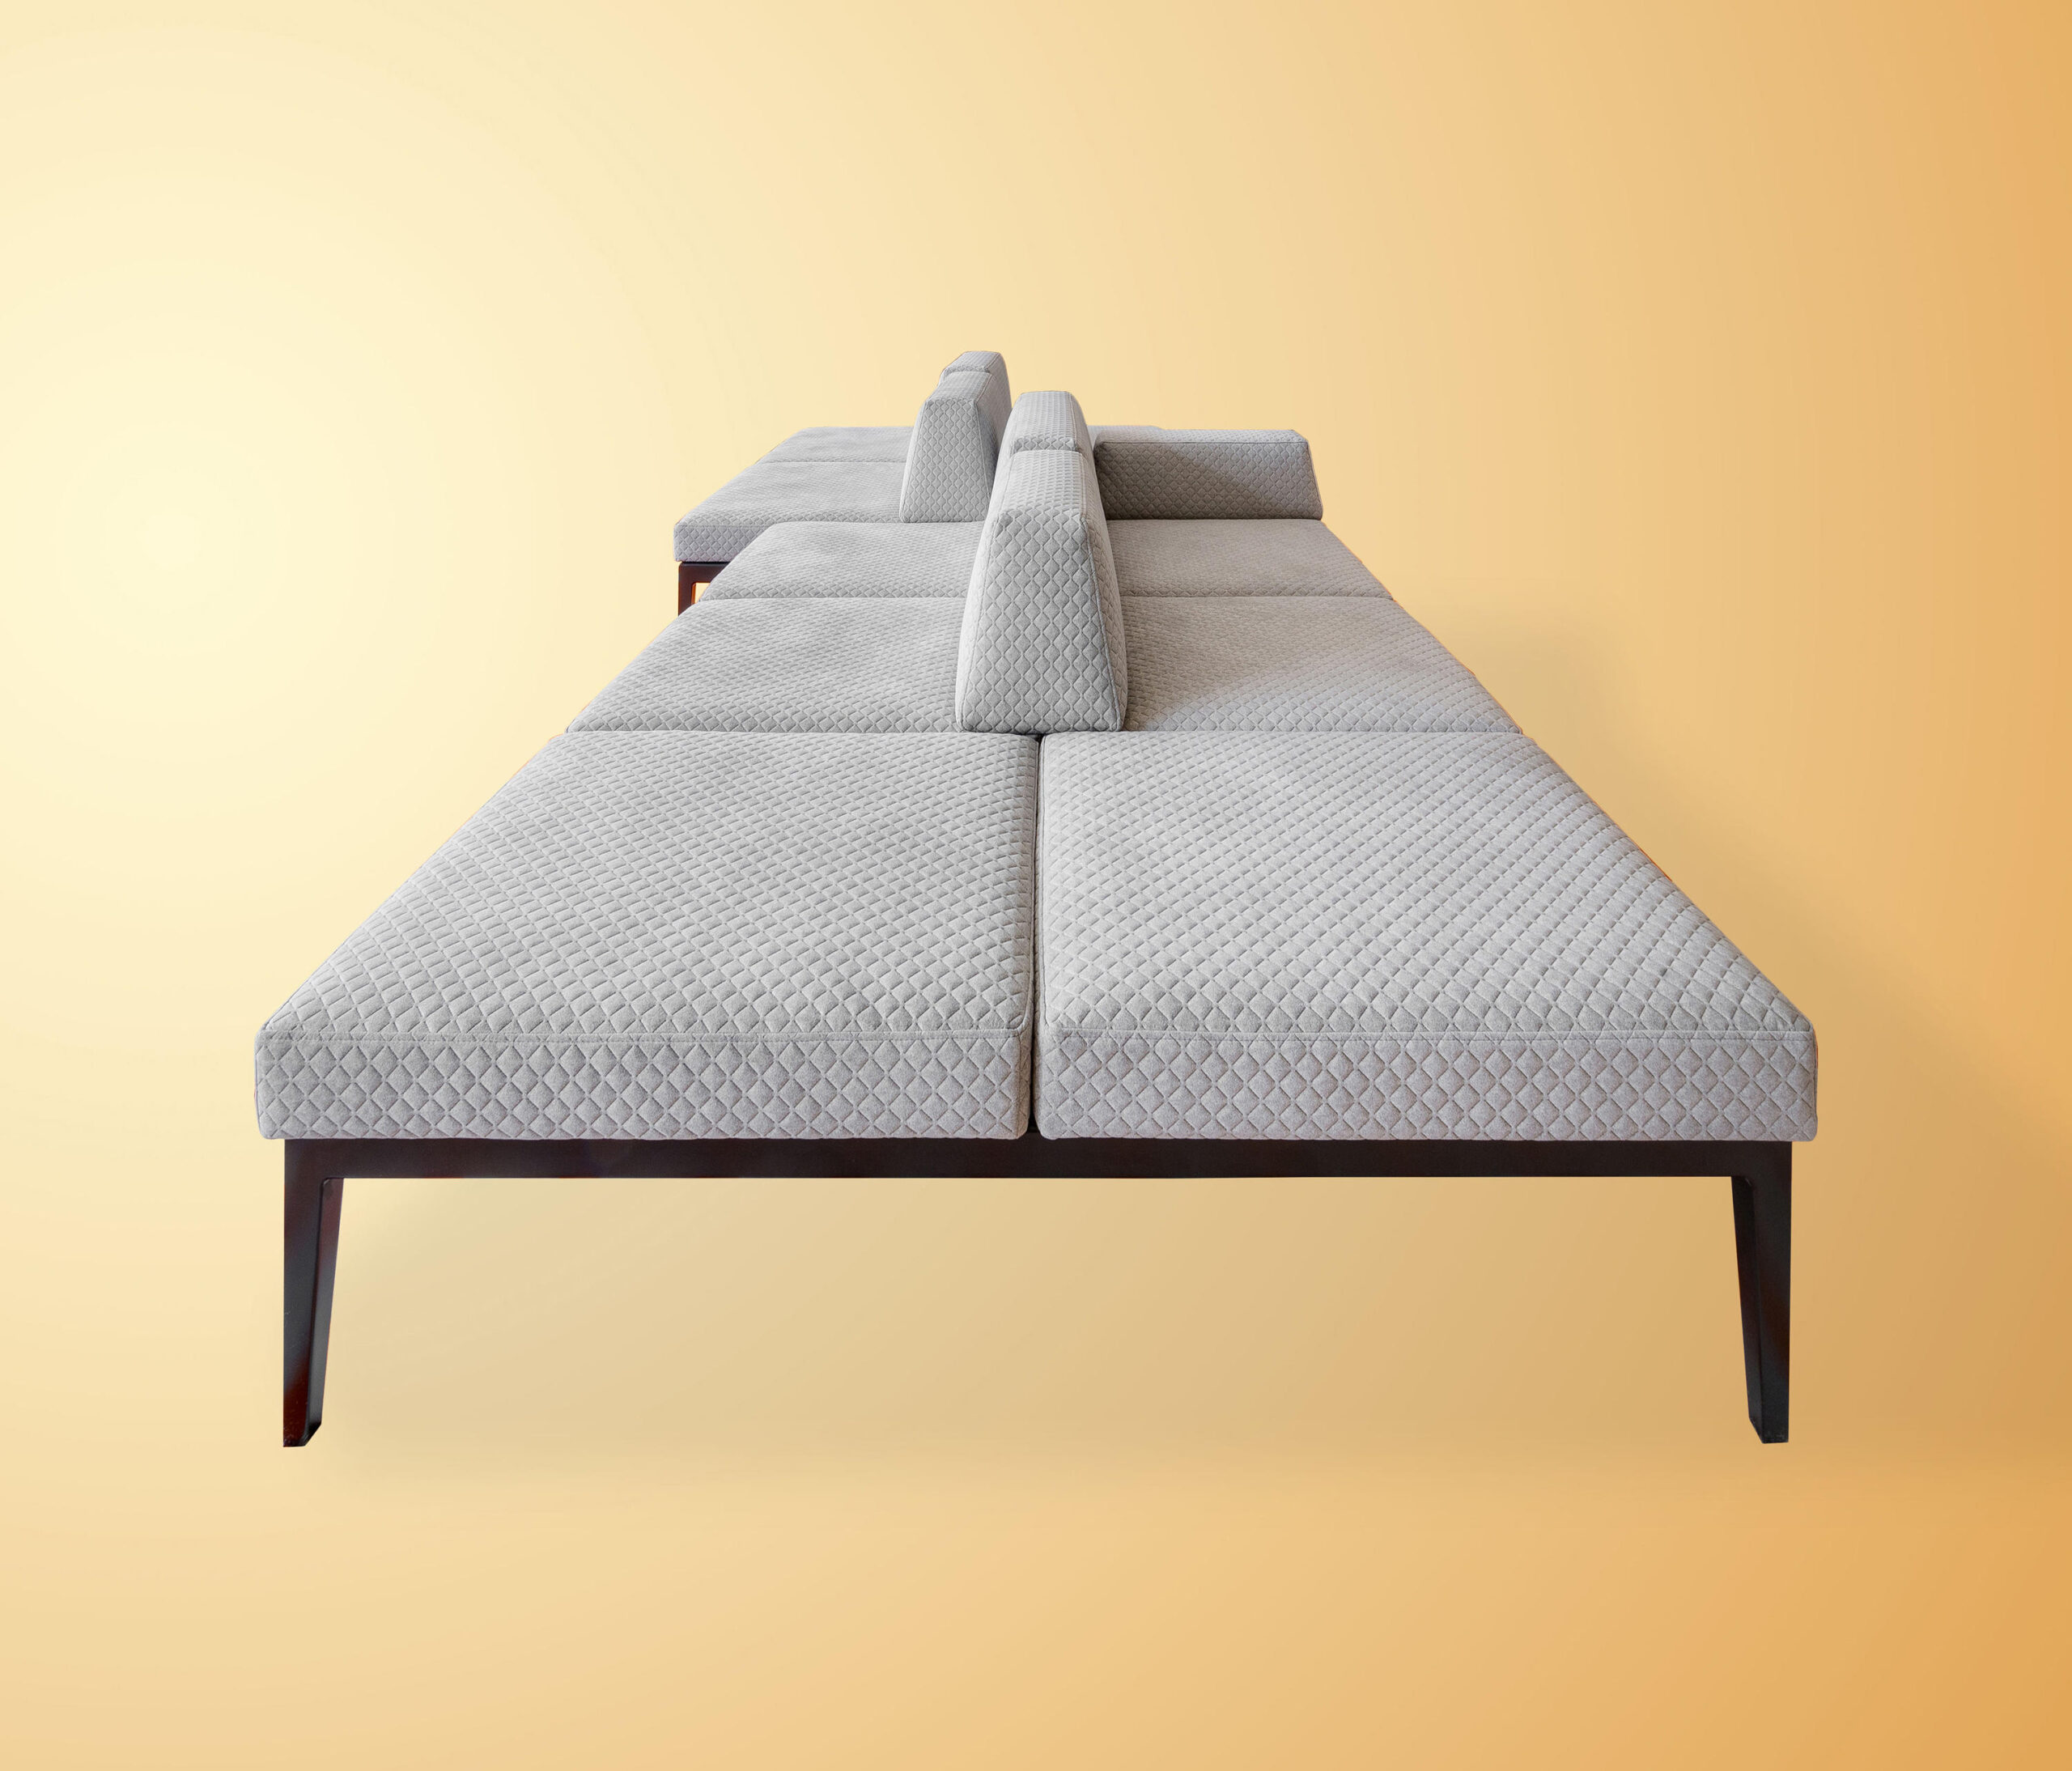 Full Size of Alcantara Sofa Uk Speckiges Reinigen Bed Leder For Sale Kaufen Tennis Sofascore Neu Dampfreiniger Lassen Daniel Sofas Von Ivar London Architonic Mit Sofa Alcantara Sofa